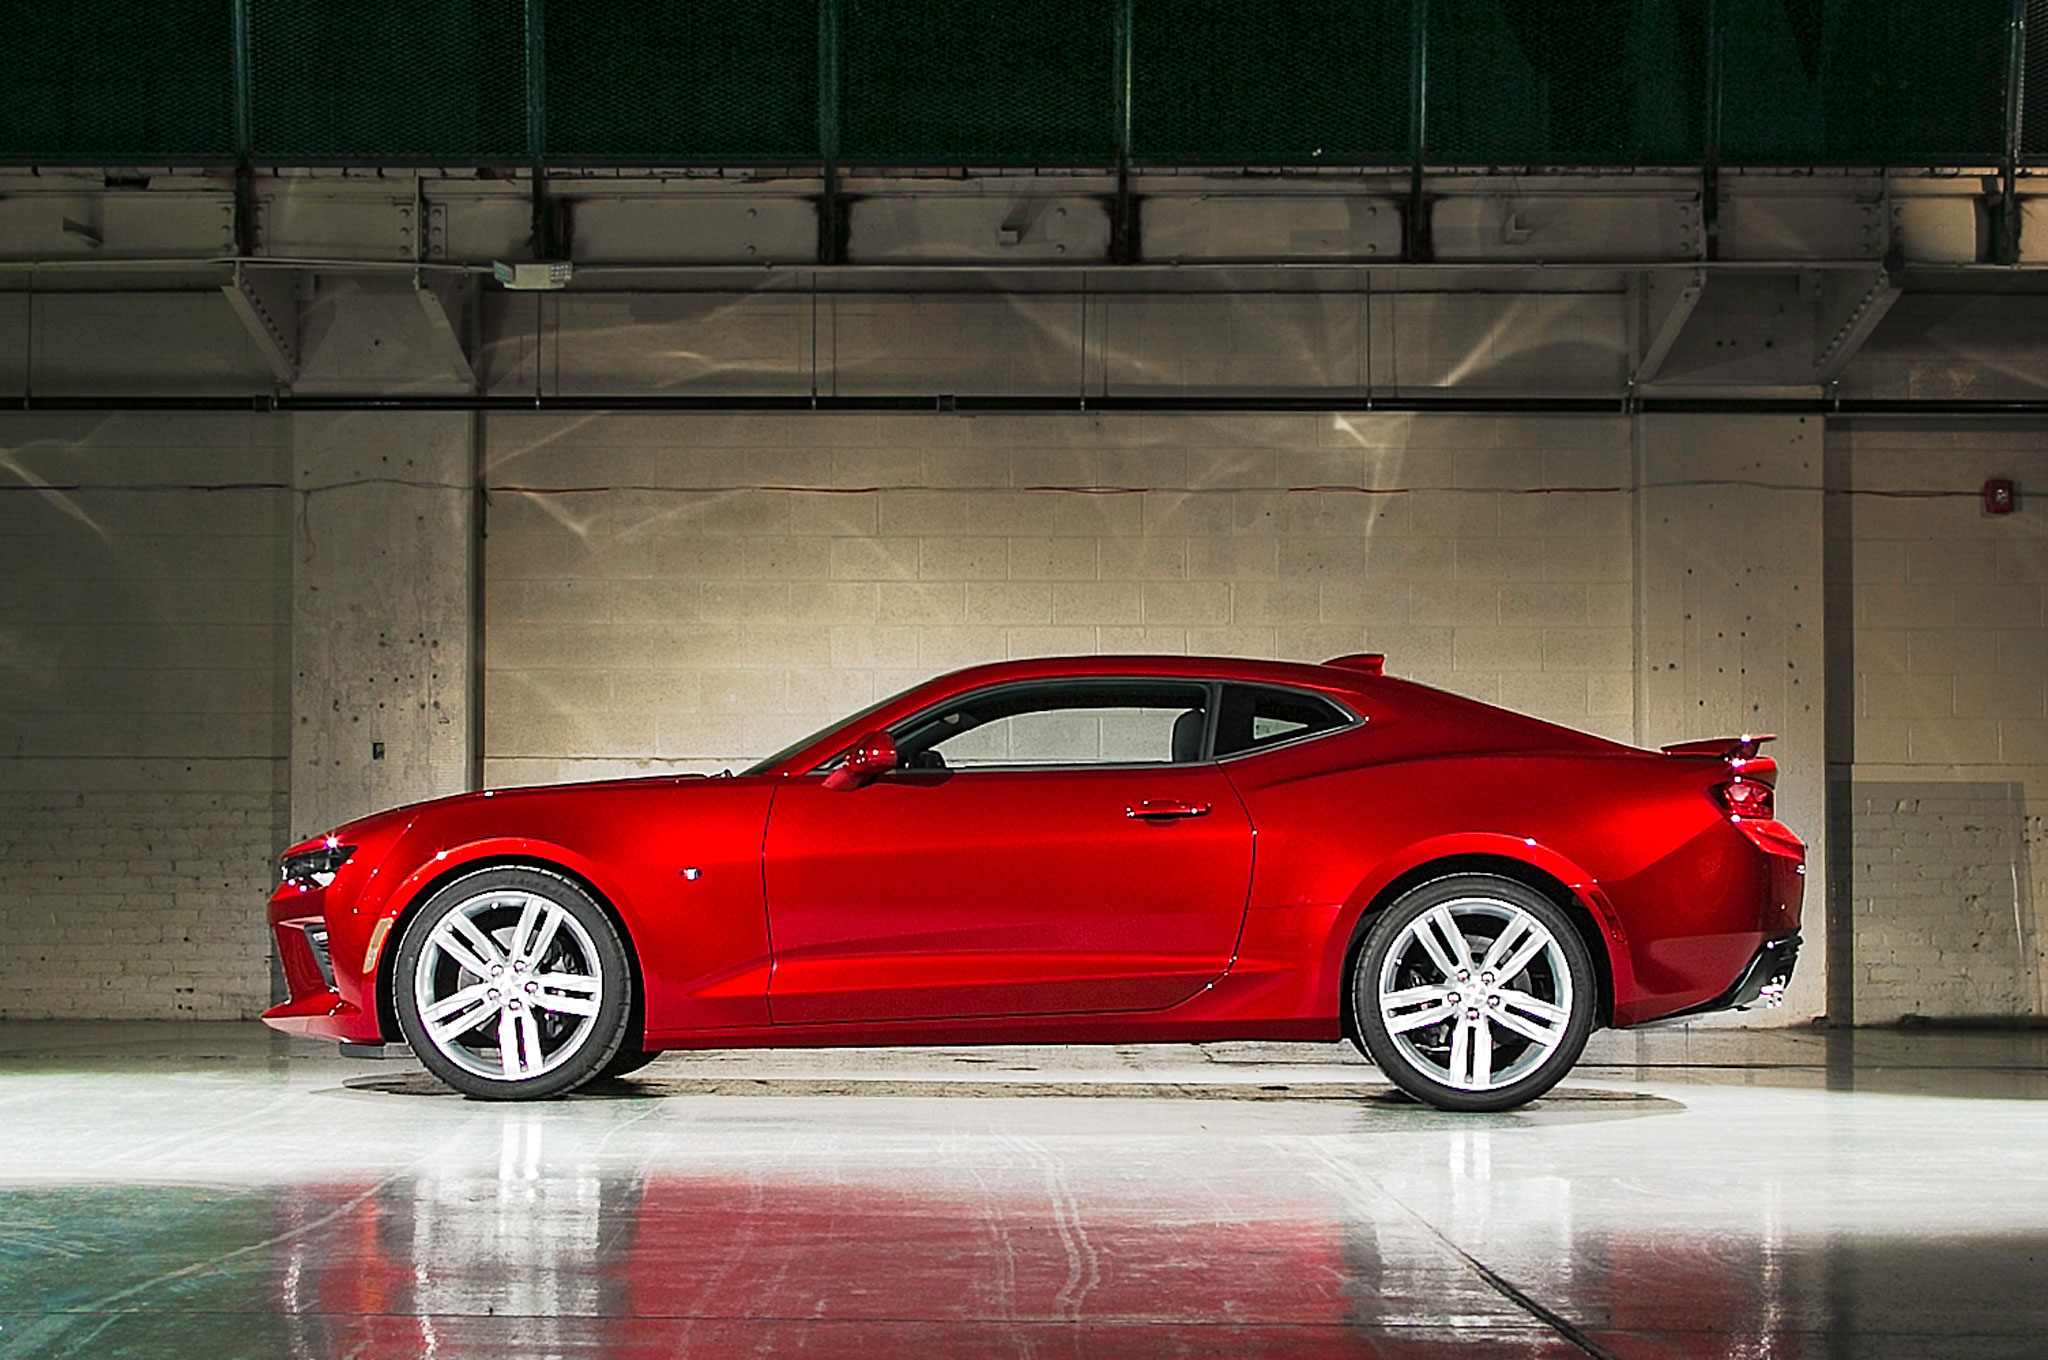 The new Camaro's more sculpted bodywork hints at the big weight loss from the outgoing model, middle. If the indents on the side were any deeper, the door wouldn't be able to open.